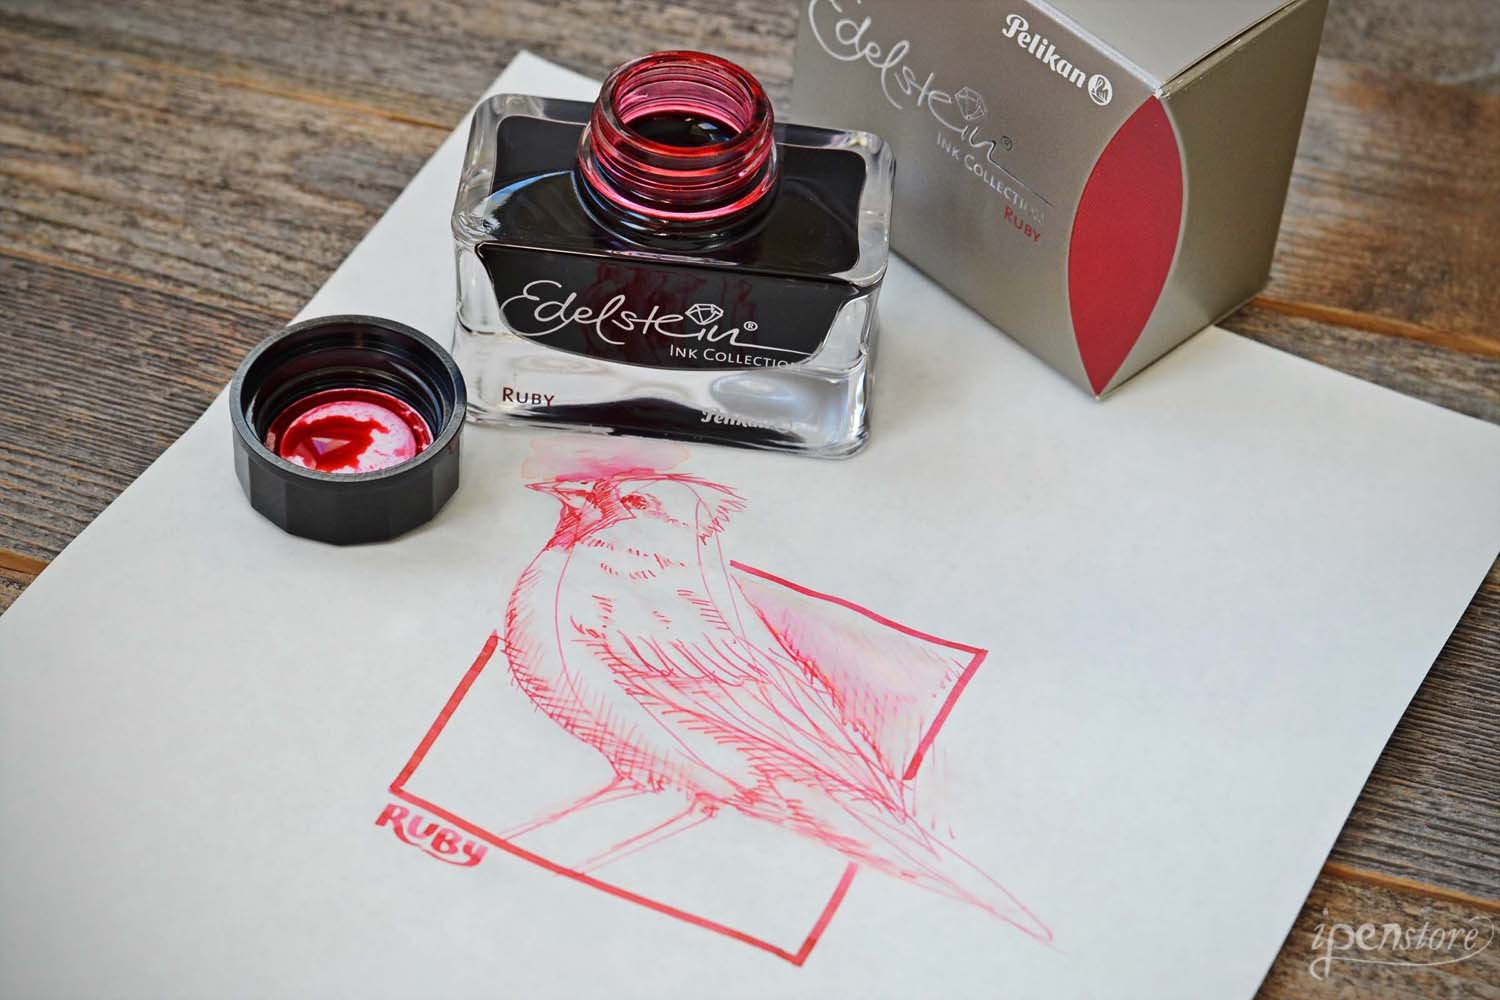 Pelikan Bottled Ink Refill - Edelstein Ruby 339358 by Pelikan (Image #4)